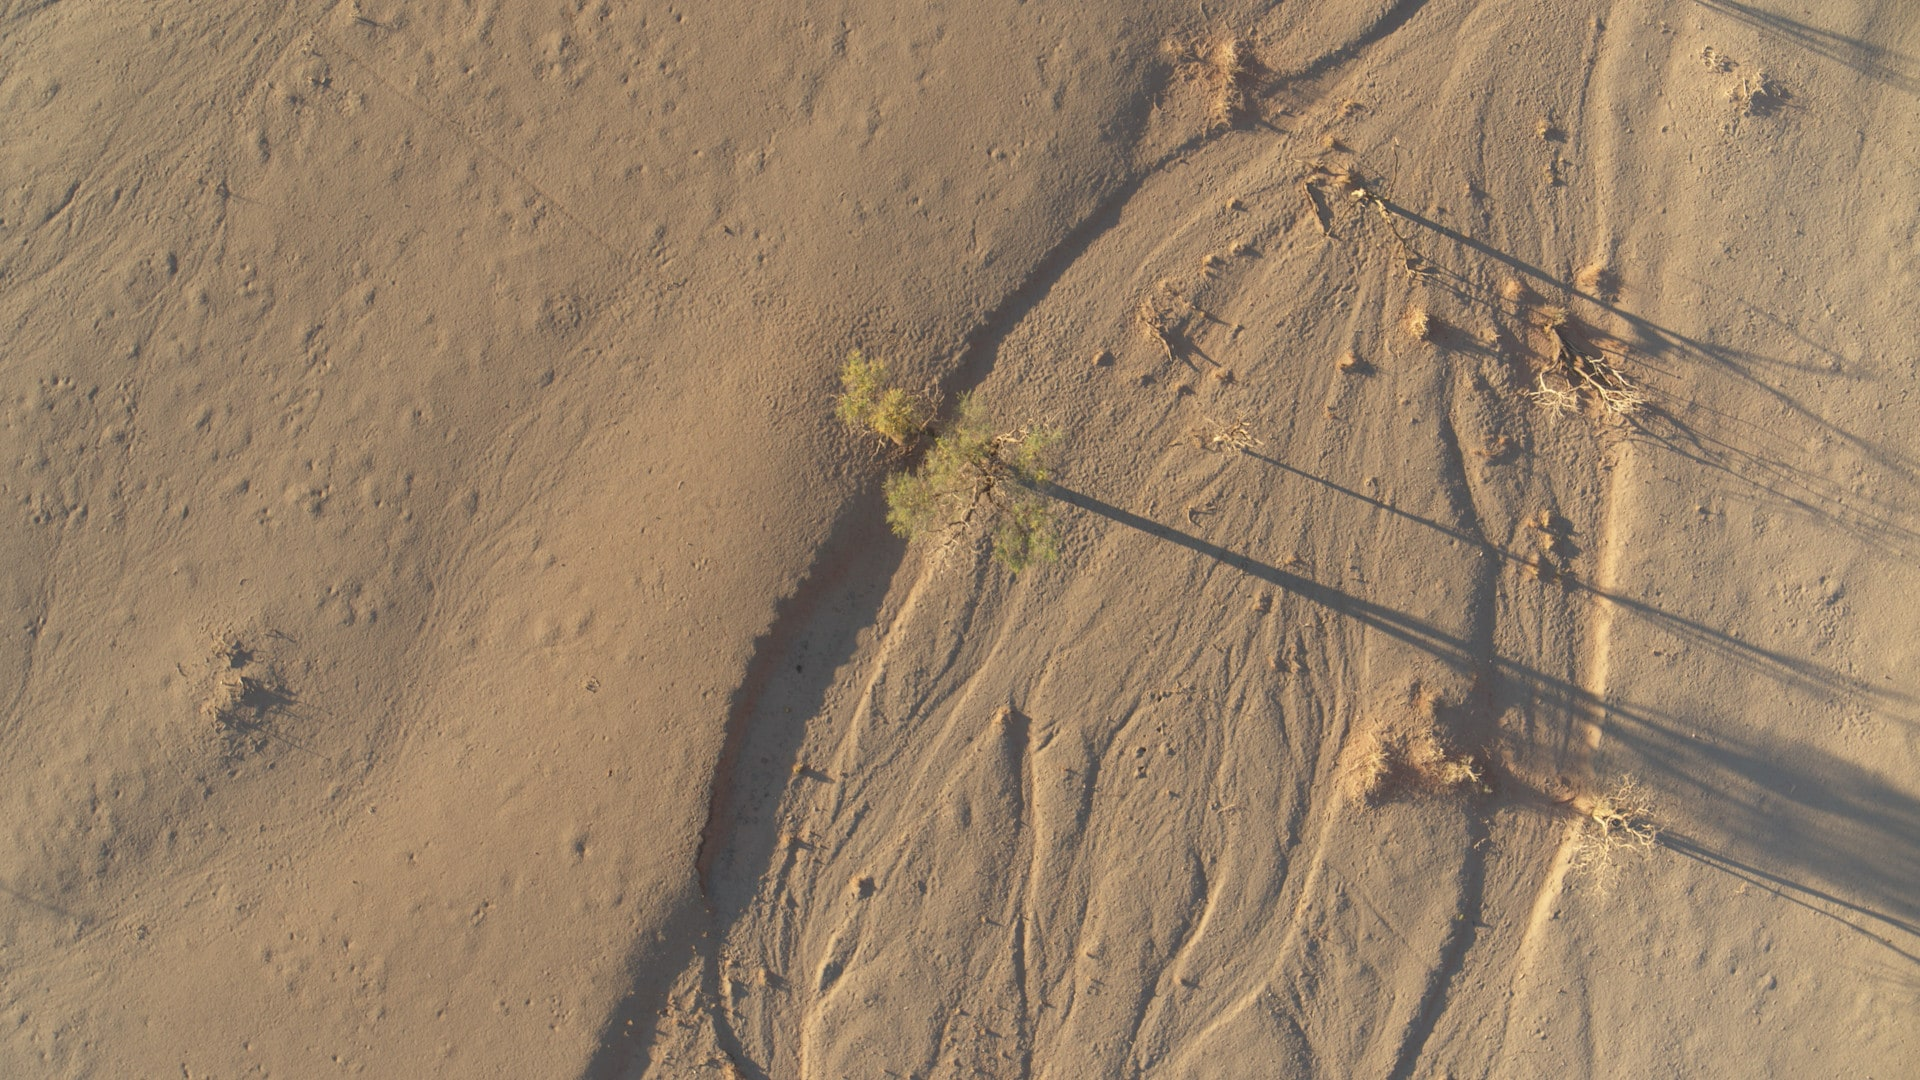 Dry riverbeds in the NamibRand Nature Reserve, Namibia. (National Geographic for Disney+)